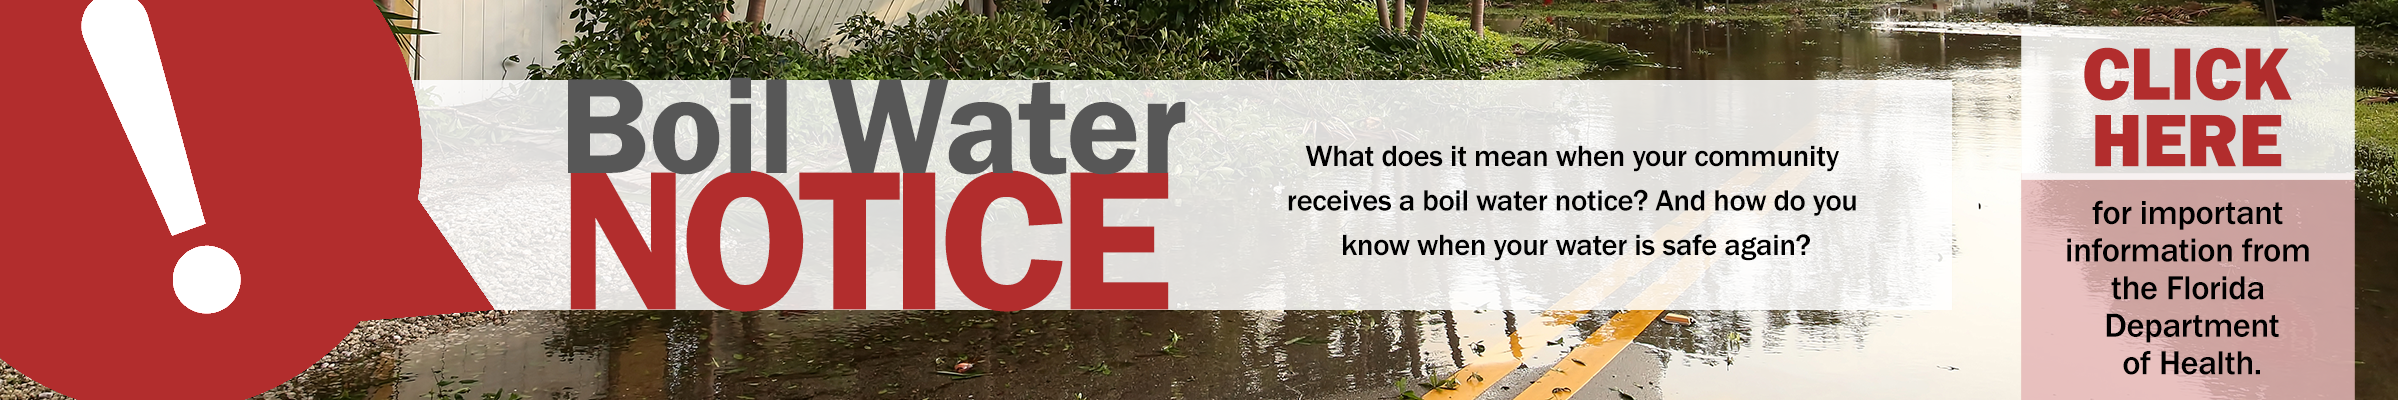 Boil Water Notice. What does it mean when your community receives a boil water notice? And how do you know when your water is safe again? Click here for important informationfrom the Florida Department of Health.